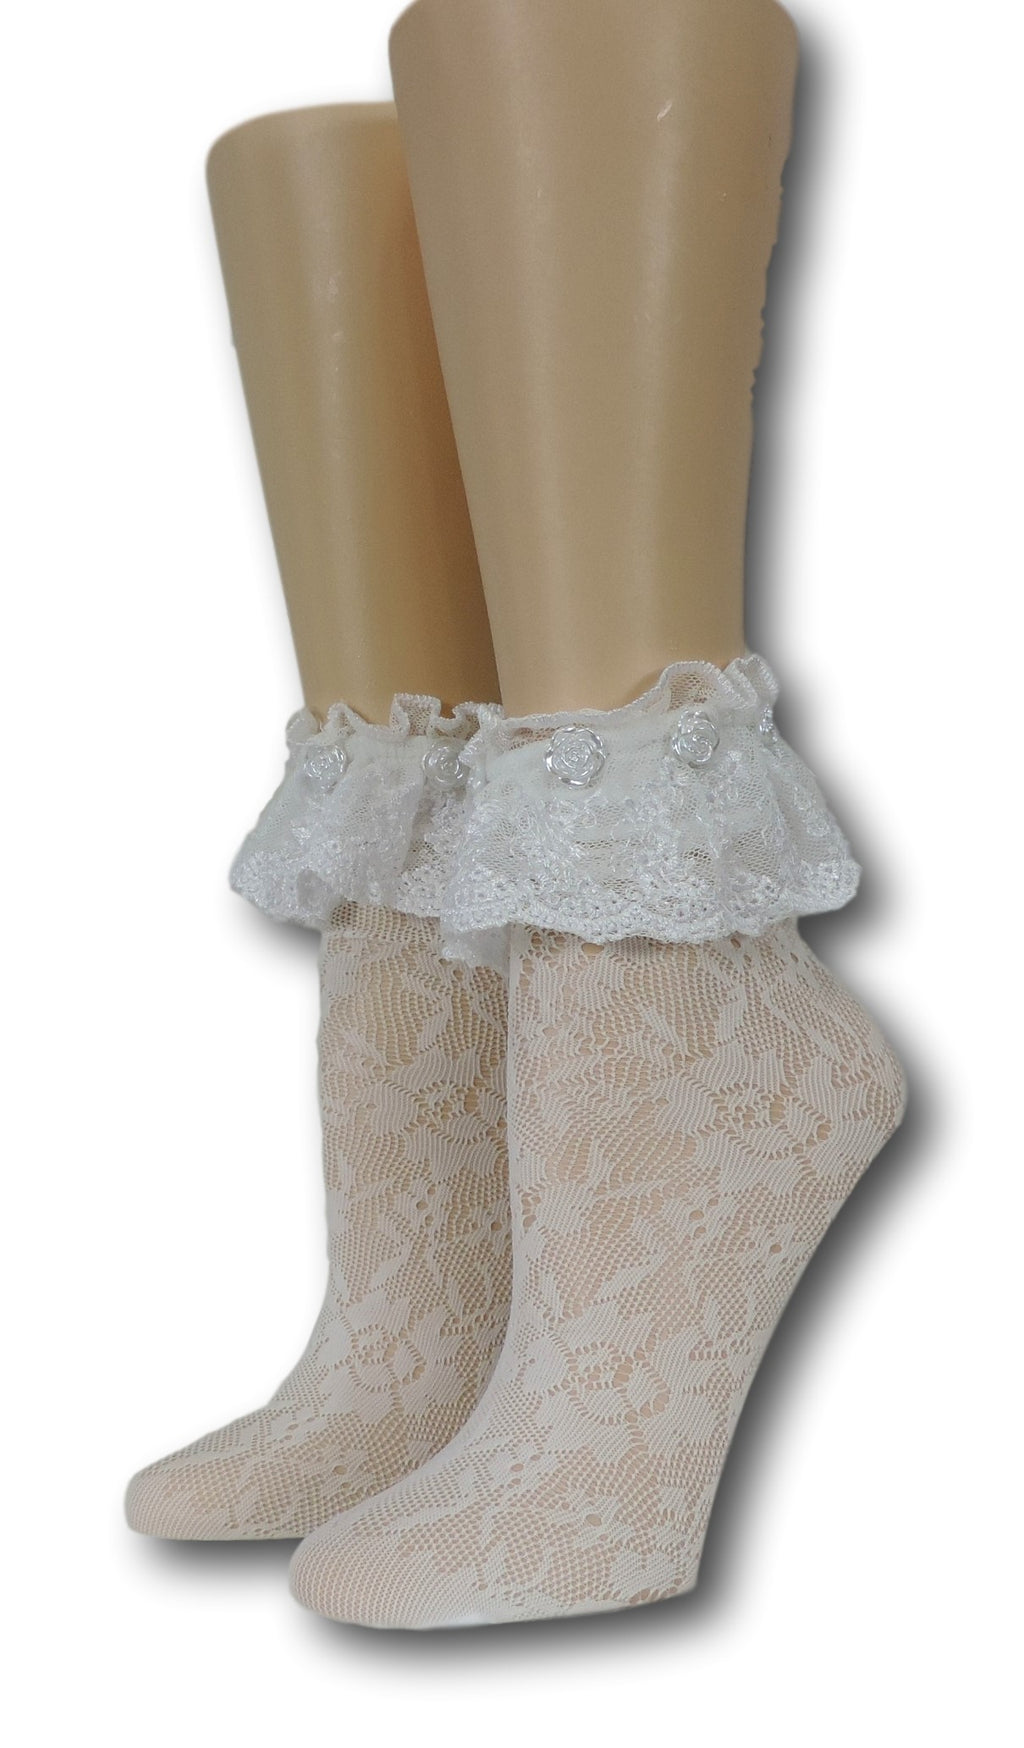 White Floral Frilly Socks with beads